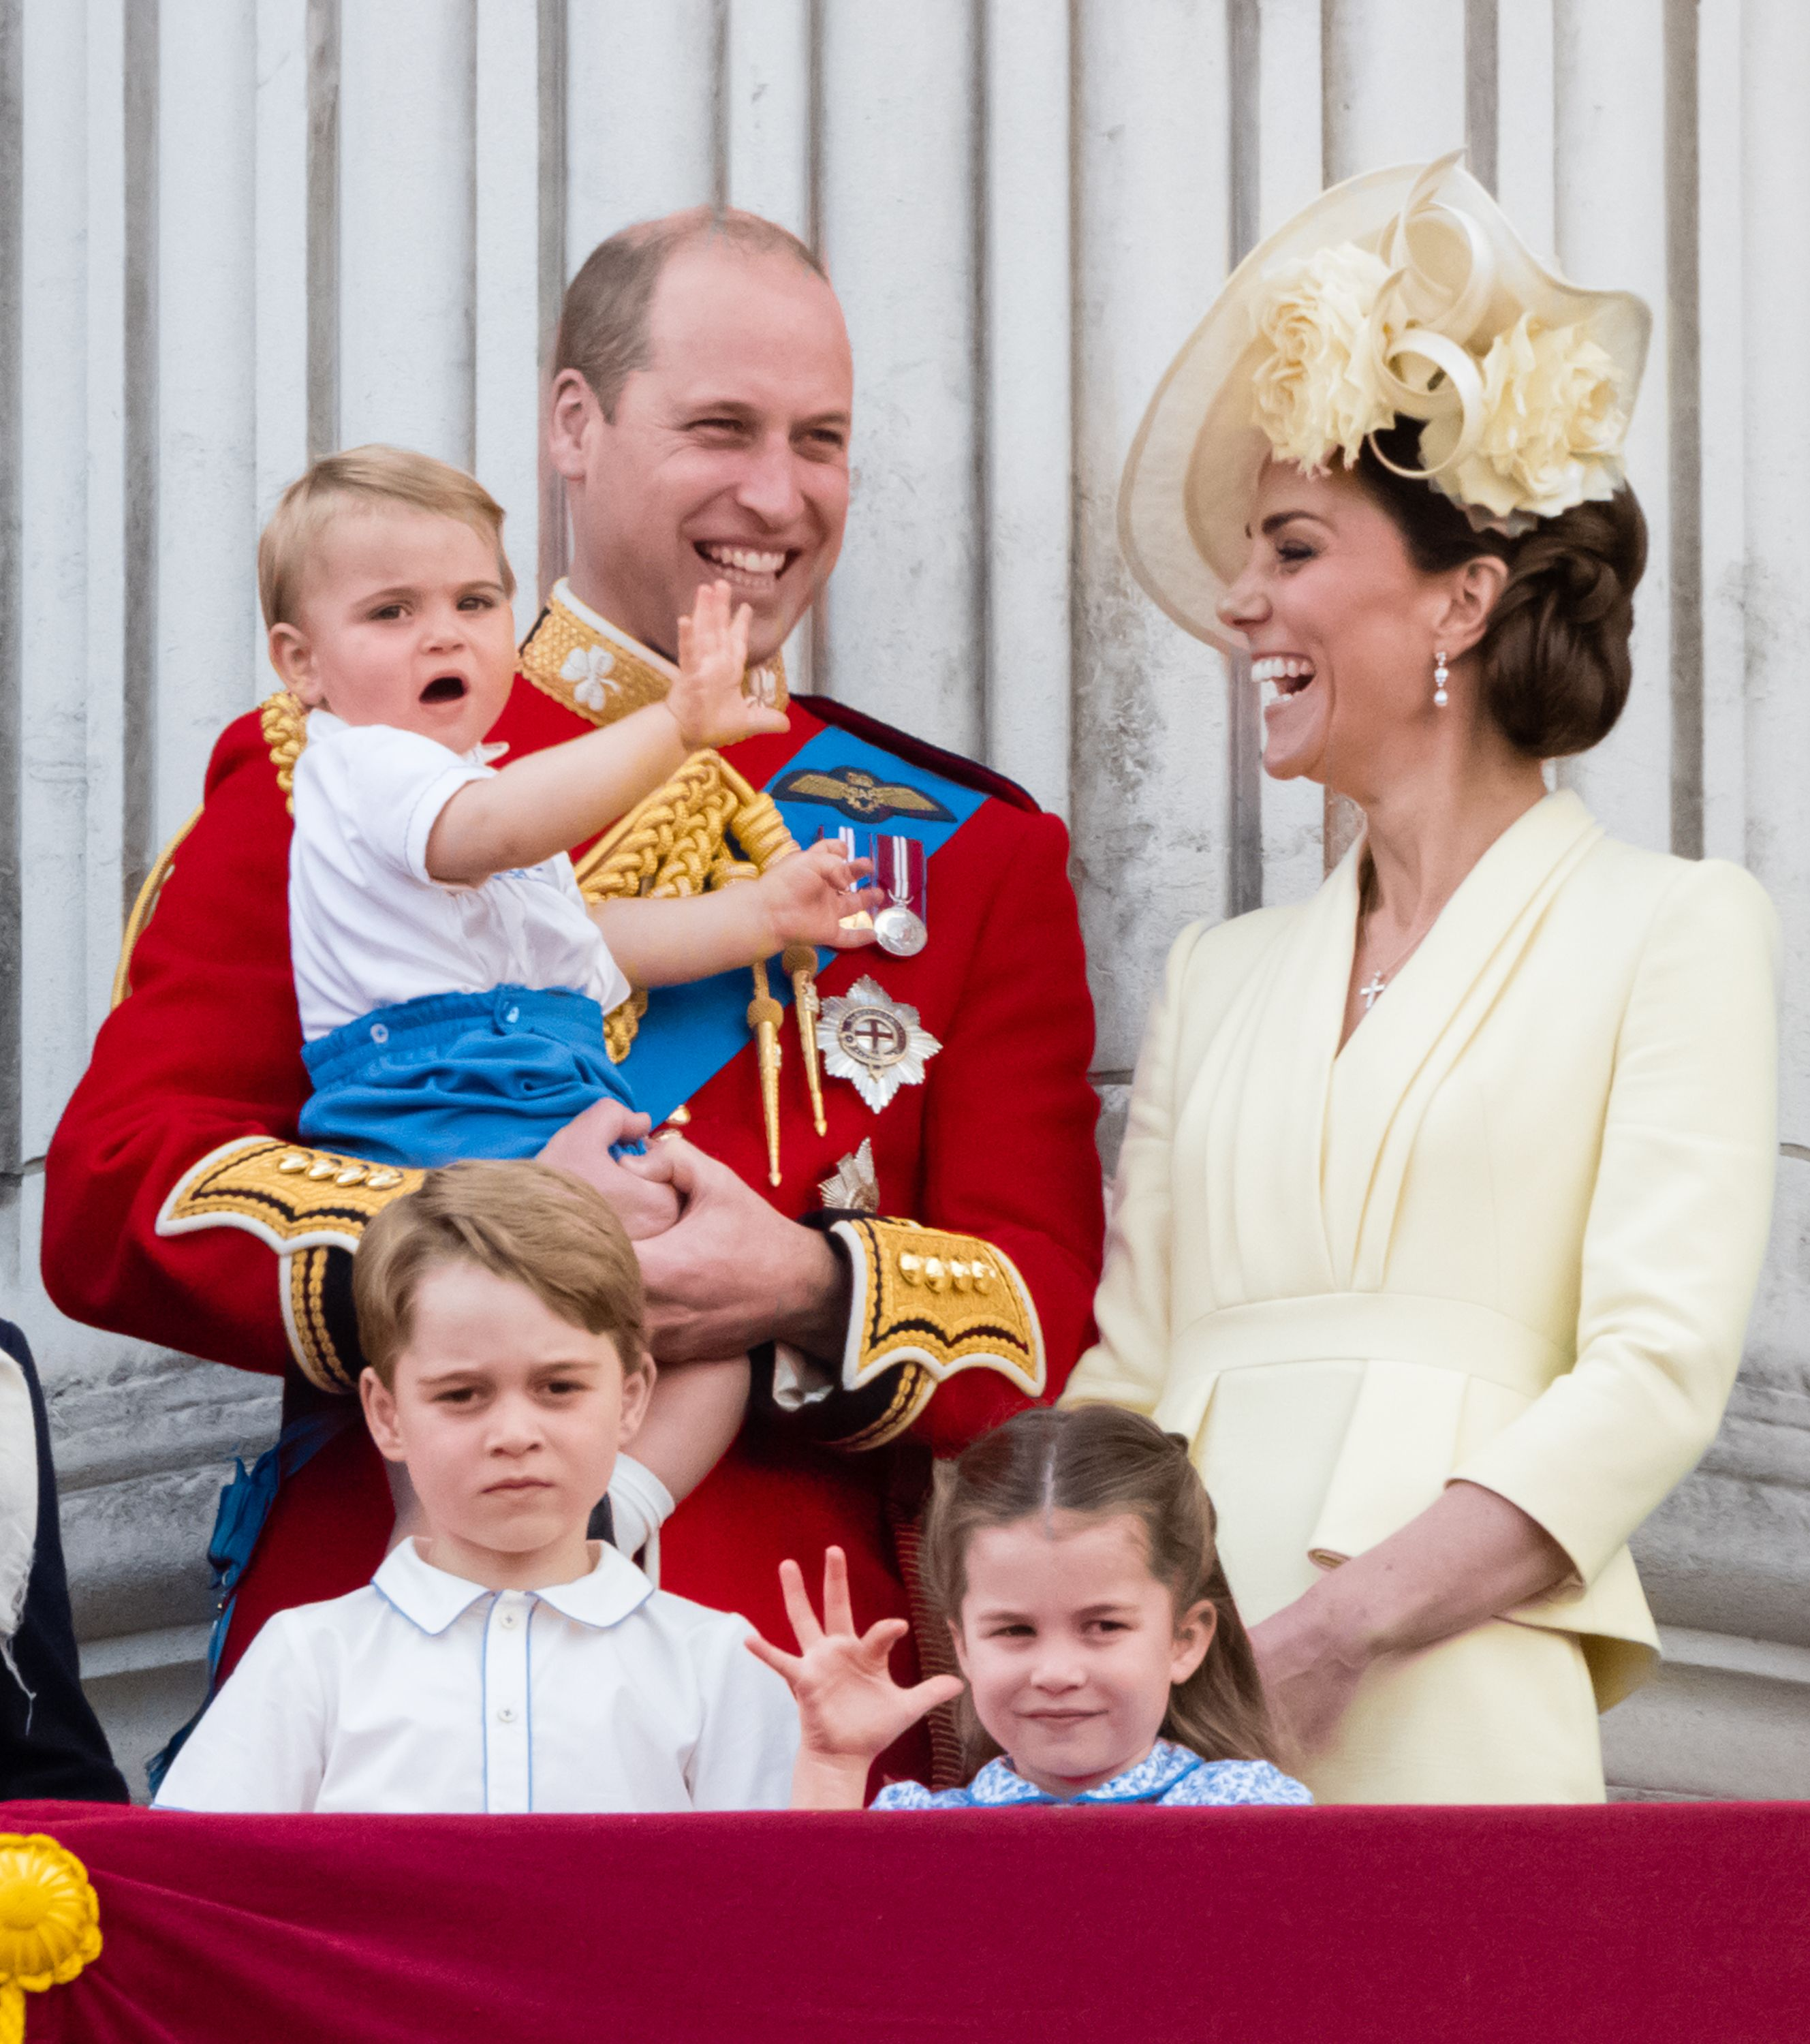 Kate Middleton and Prince William Allegedly Love to Take Their Kids to the Local Pub